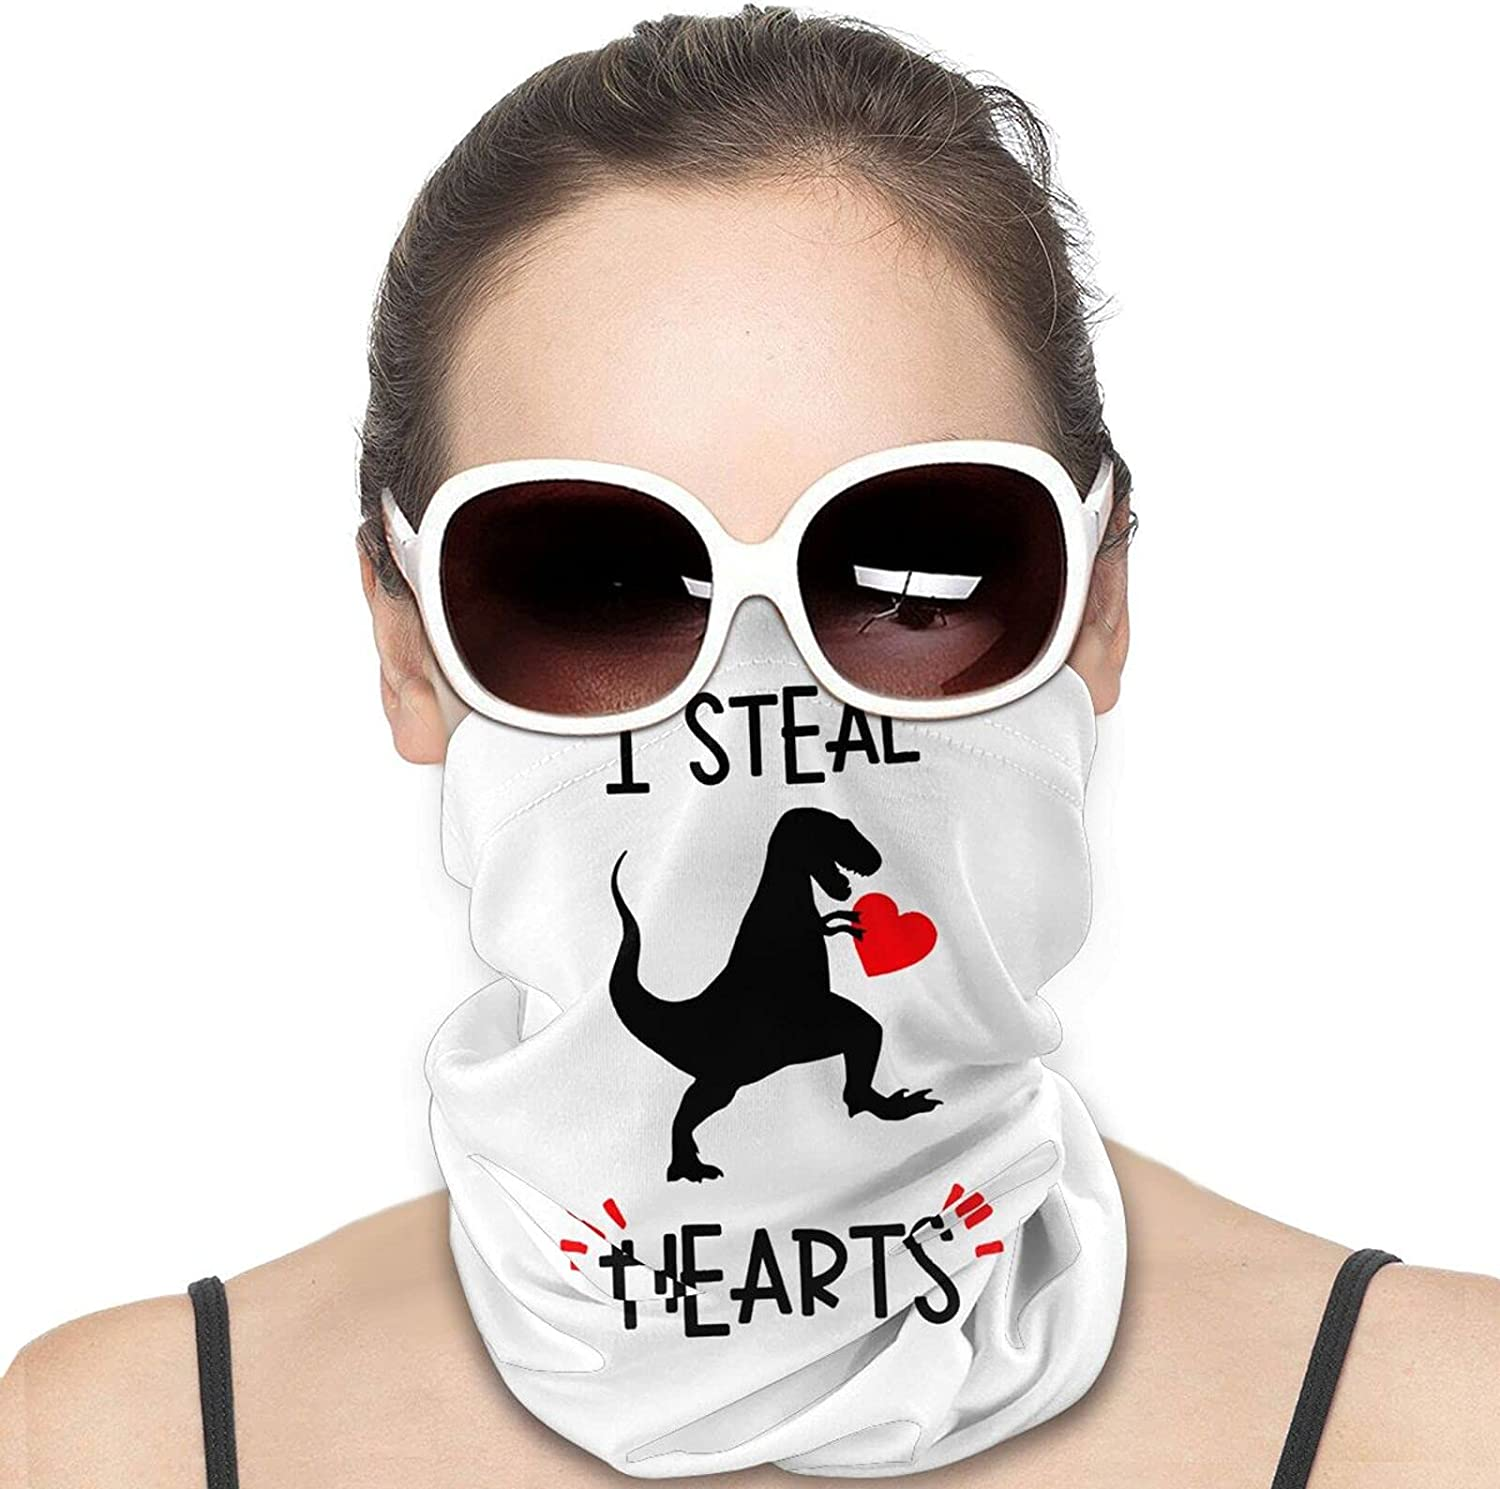 I Steal Hearts Trex Dino Round Neck Gaiter Bandnas Face Cover Uv Protection Prevent bask in Ice Scarf Headbands Perfect for Motorcycle Cycling Running Festival Raves Outdoors